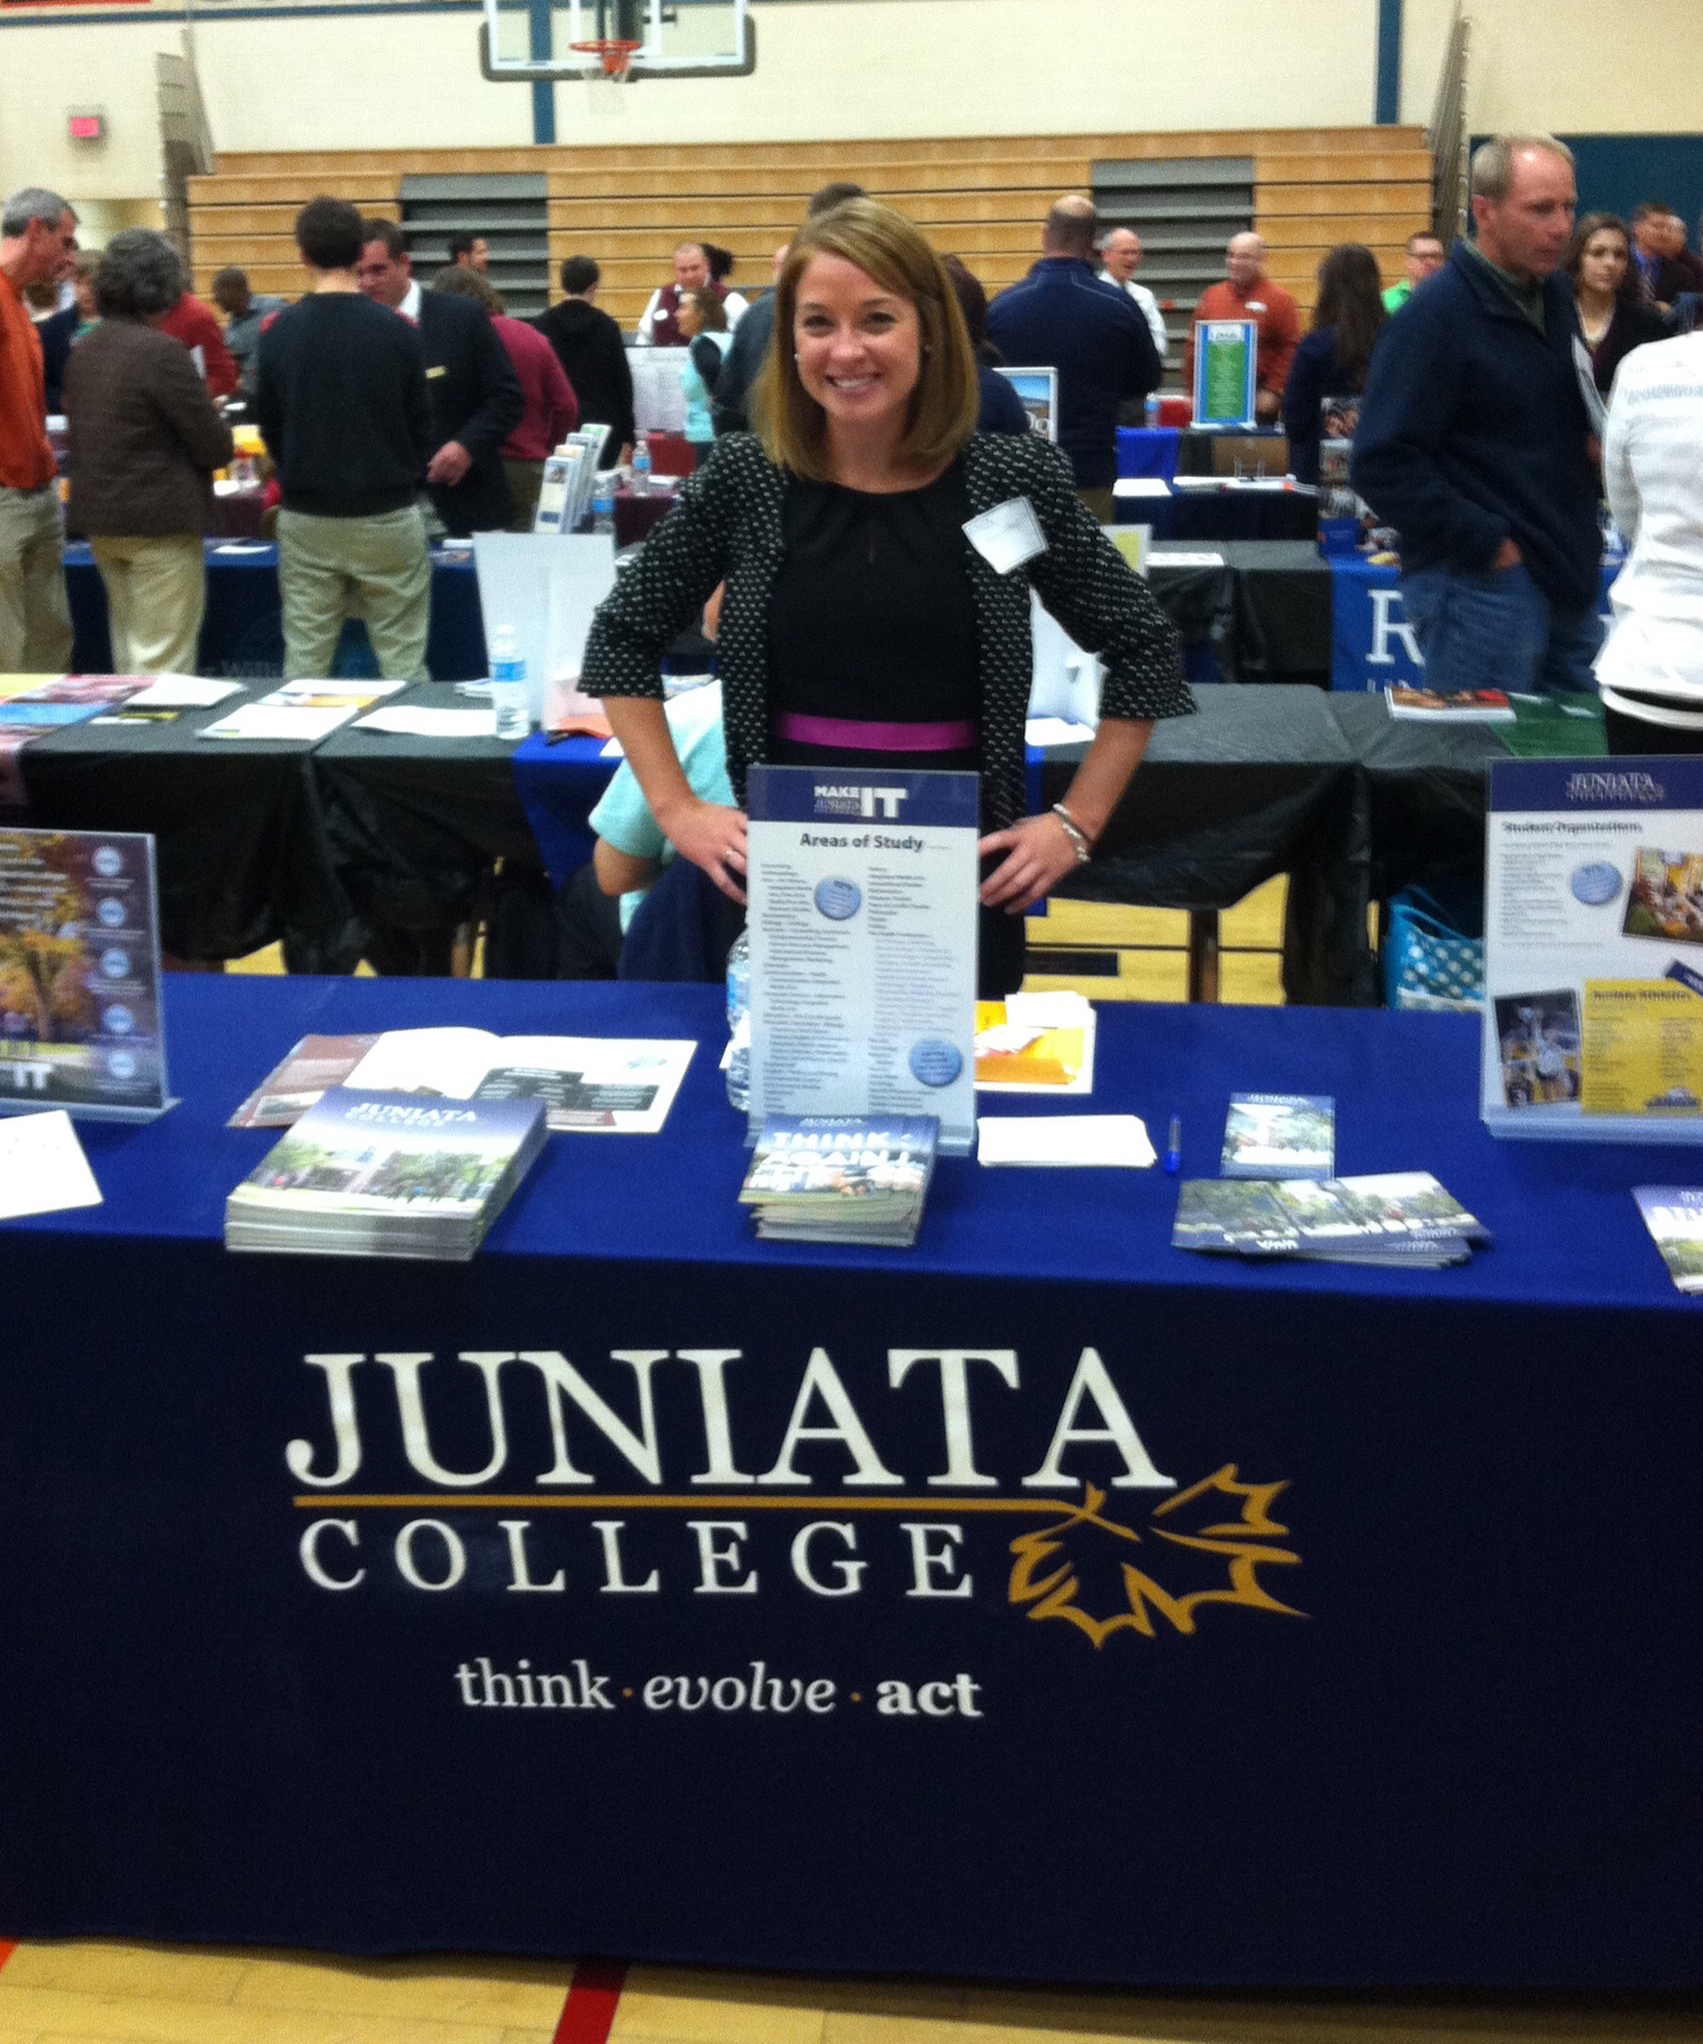 Lindsay representing Juniata College at a College Fair